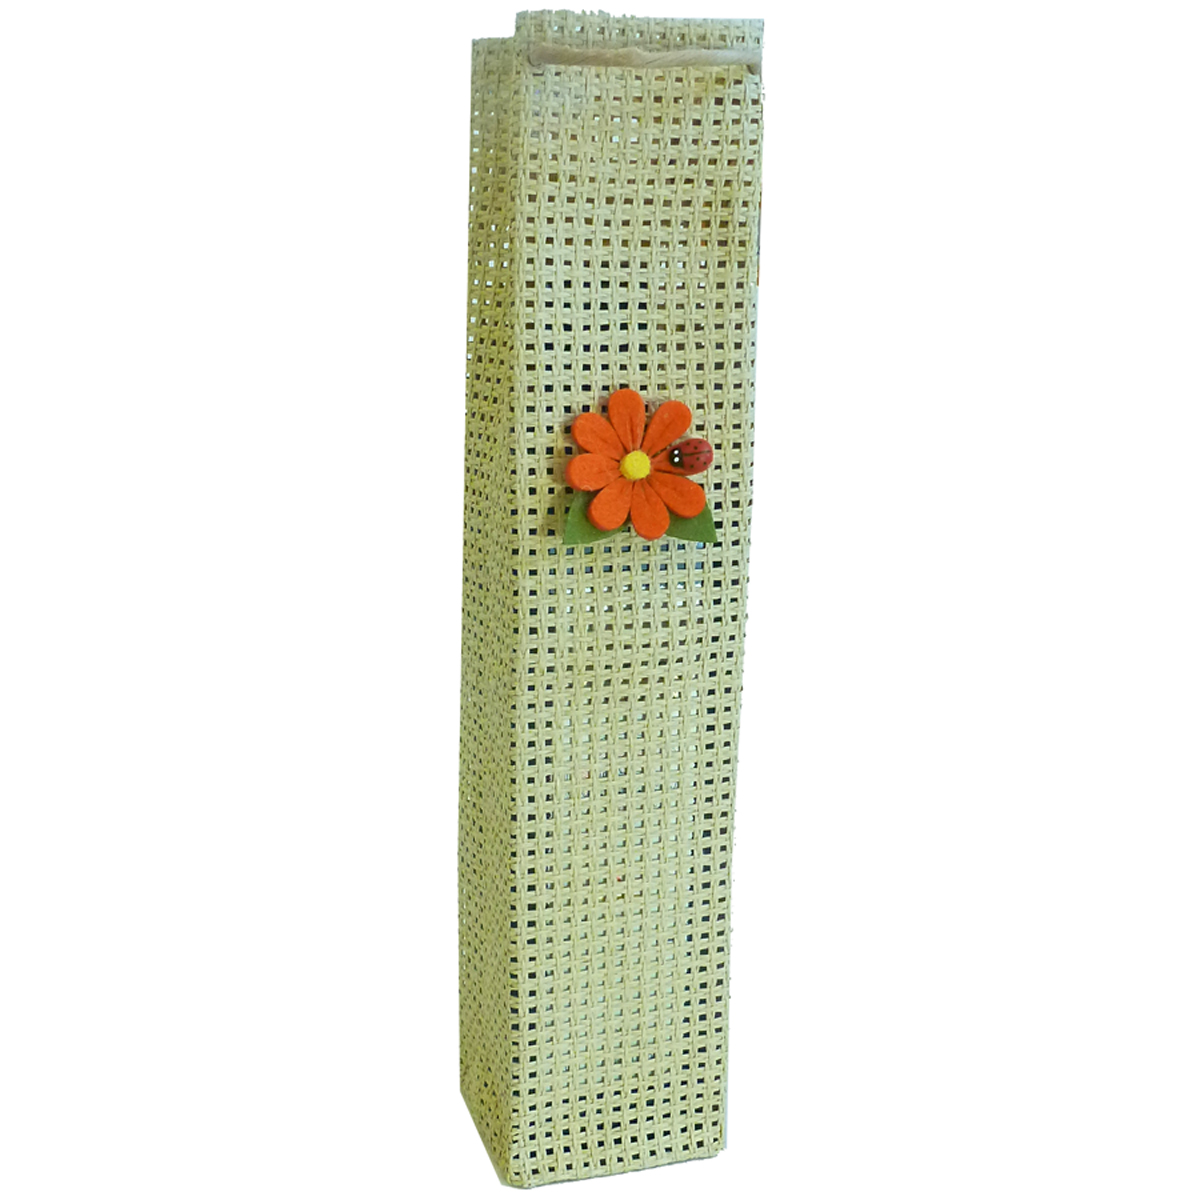 OWP1 Natural Daisy - Woven Paper Olive Oil Bottle Bags